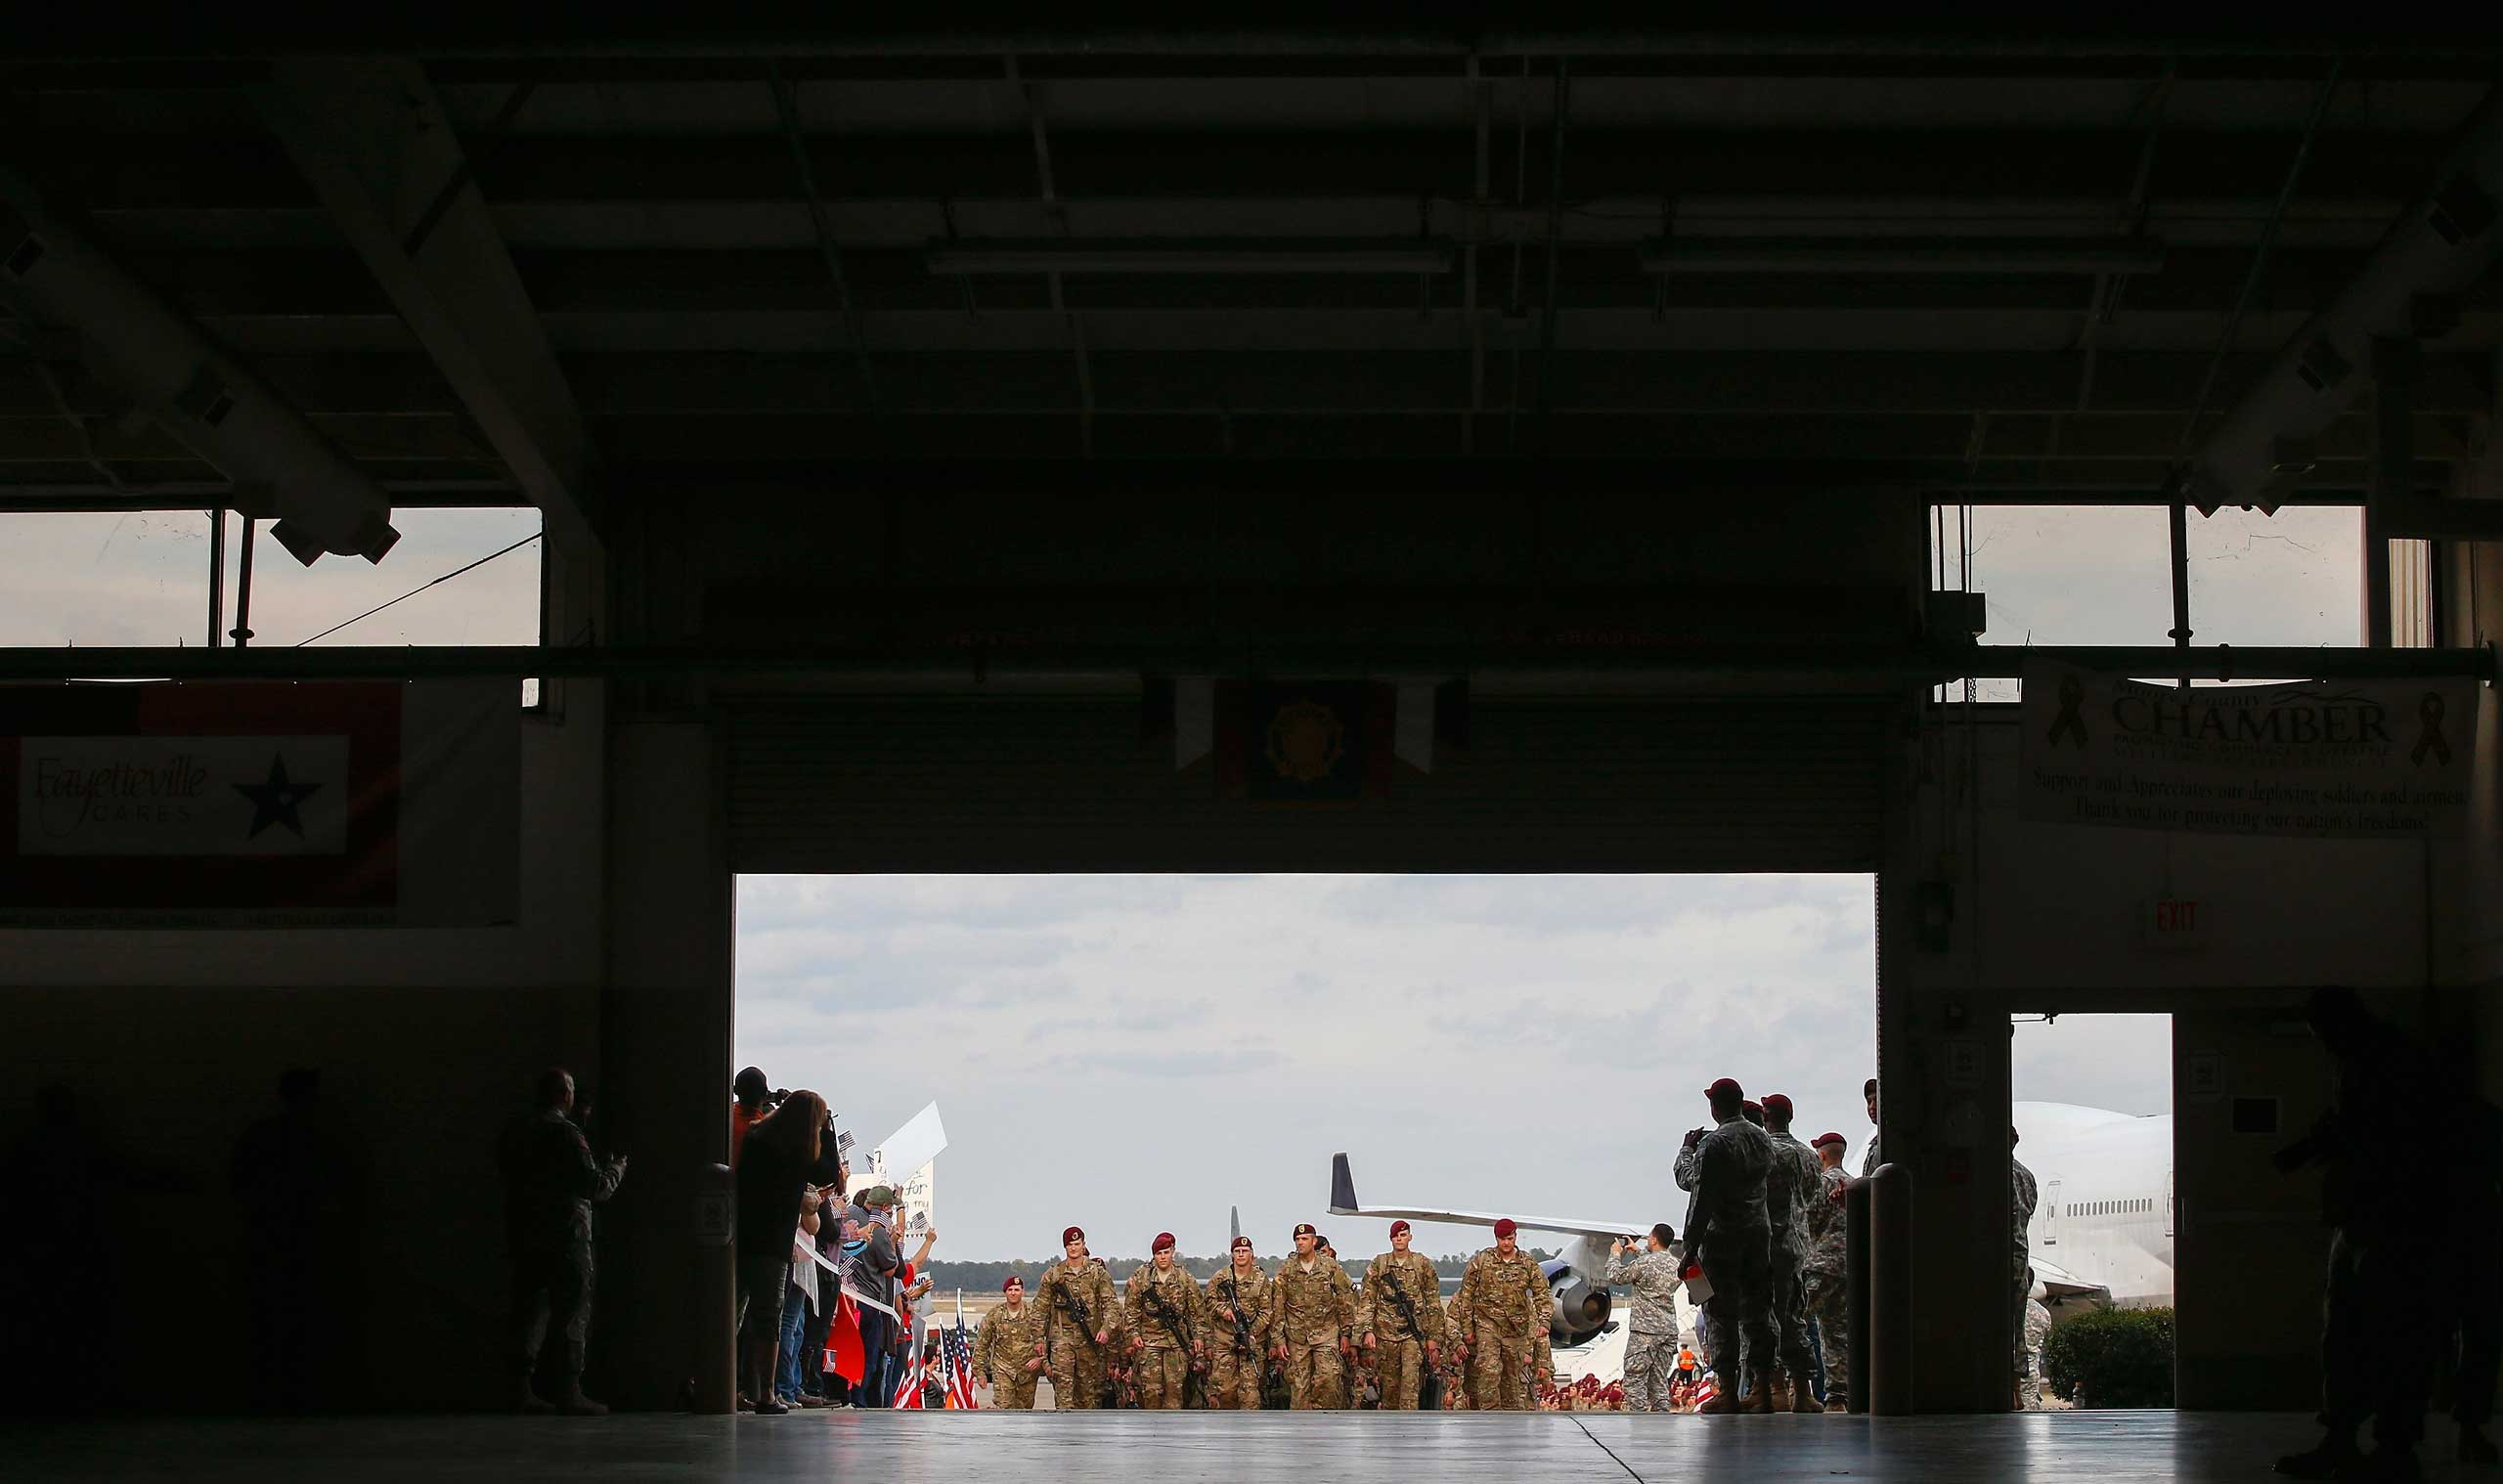 Nov. 5, 2014. Paratroopers with the First Brigade Combat Team, 82nd Airborne Division, march up the ramp as they return home from Afghanistan, at Pope Army Airfield in Fort Bragg, N.C. Approximately 300 troops arrived home after being deployed since February 2014.